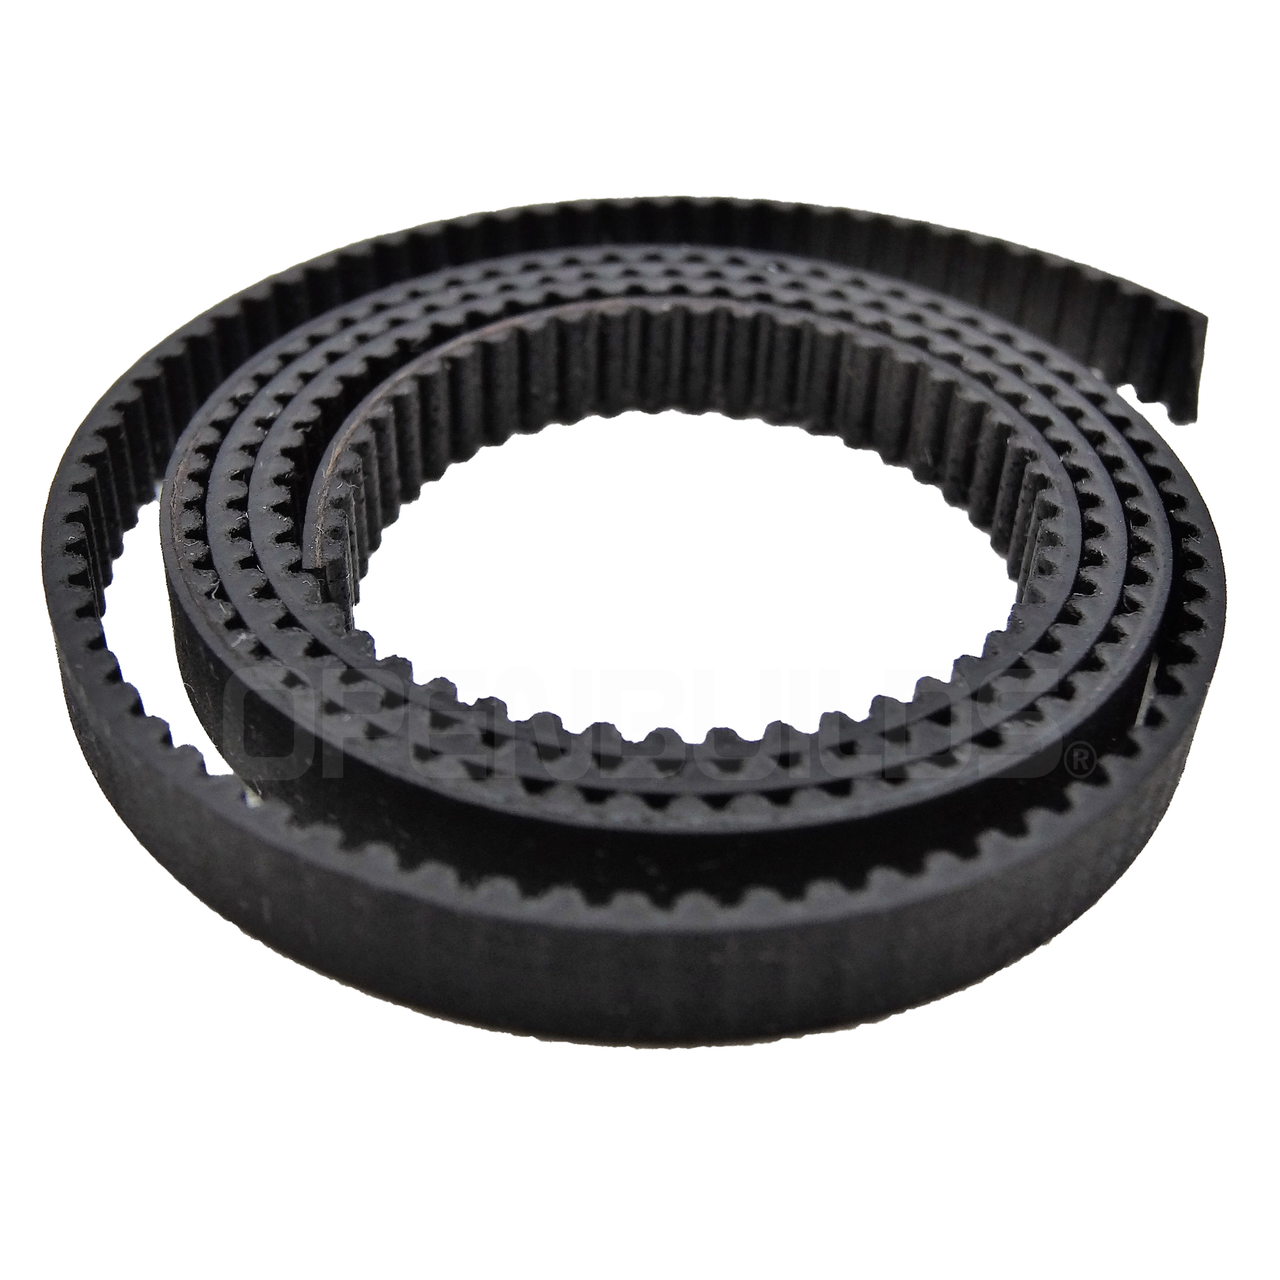 3gt  Gt2-3m  Timing Belt - By The Foot